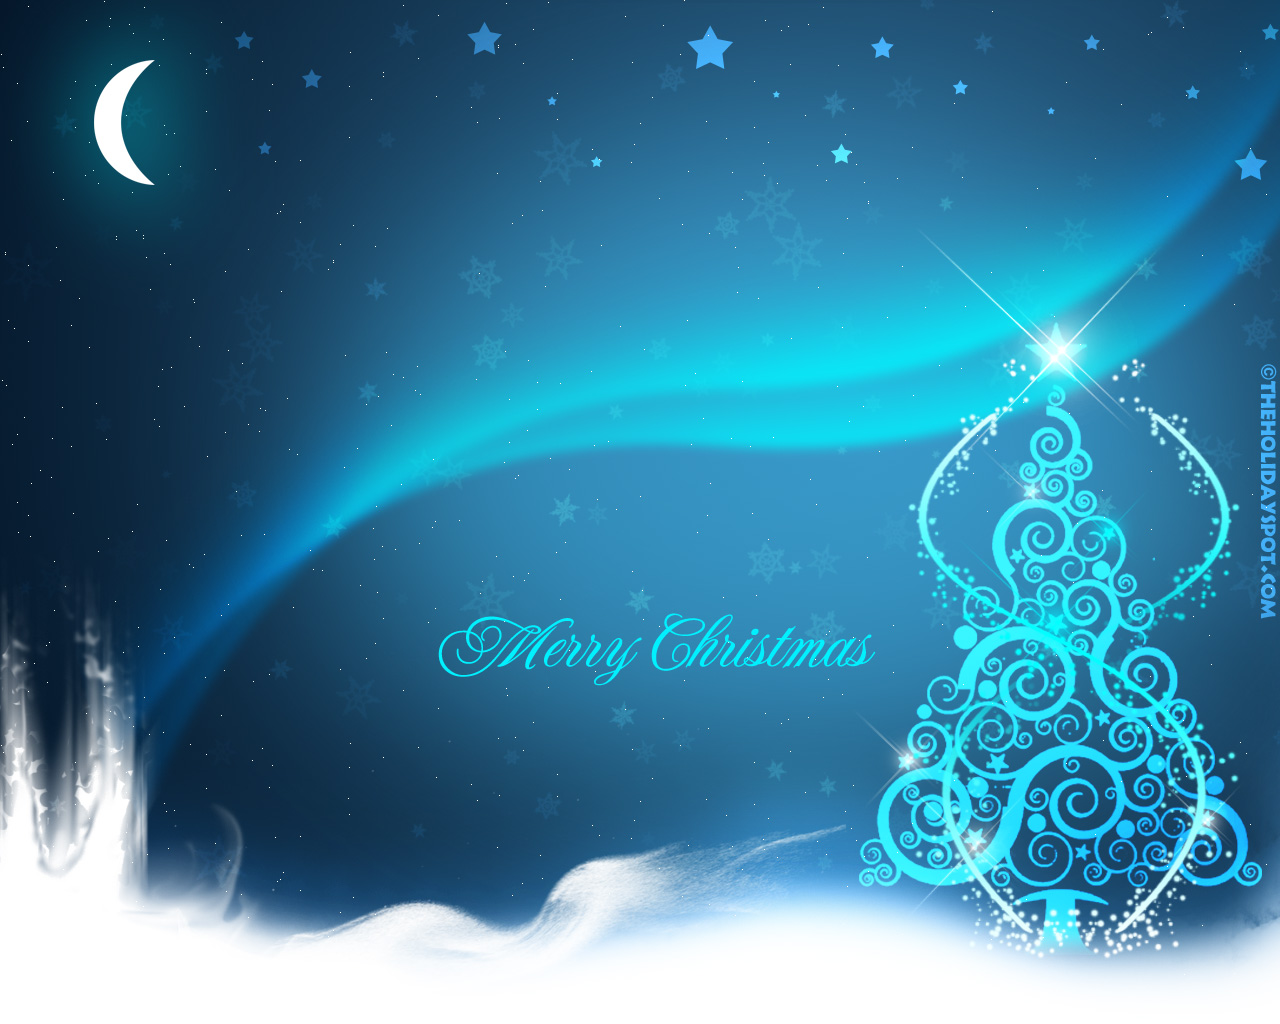 Abstract Merry Christmas And Happy New Year Wallpaper Wallpaper